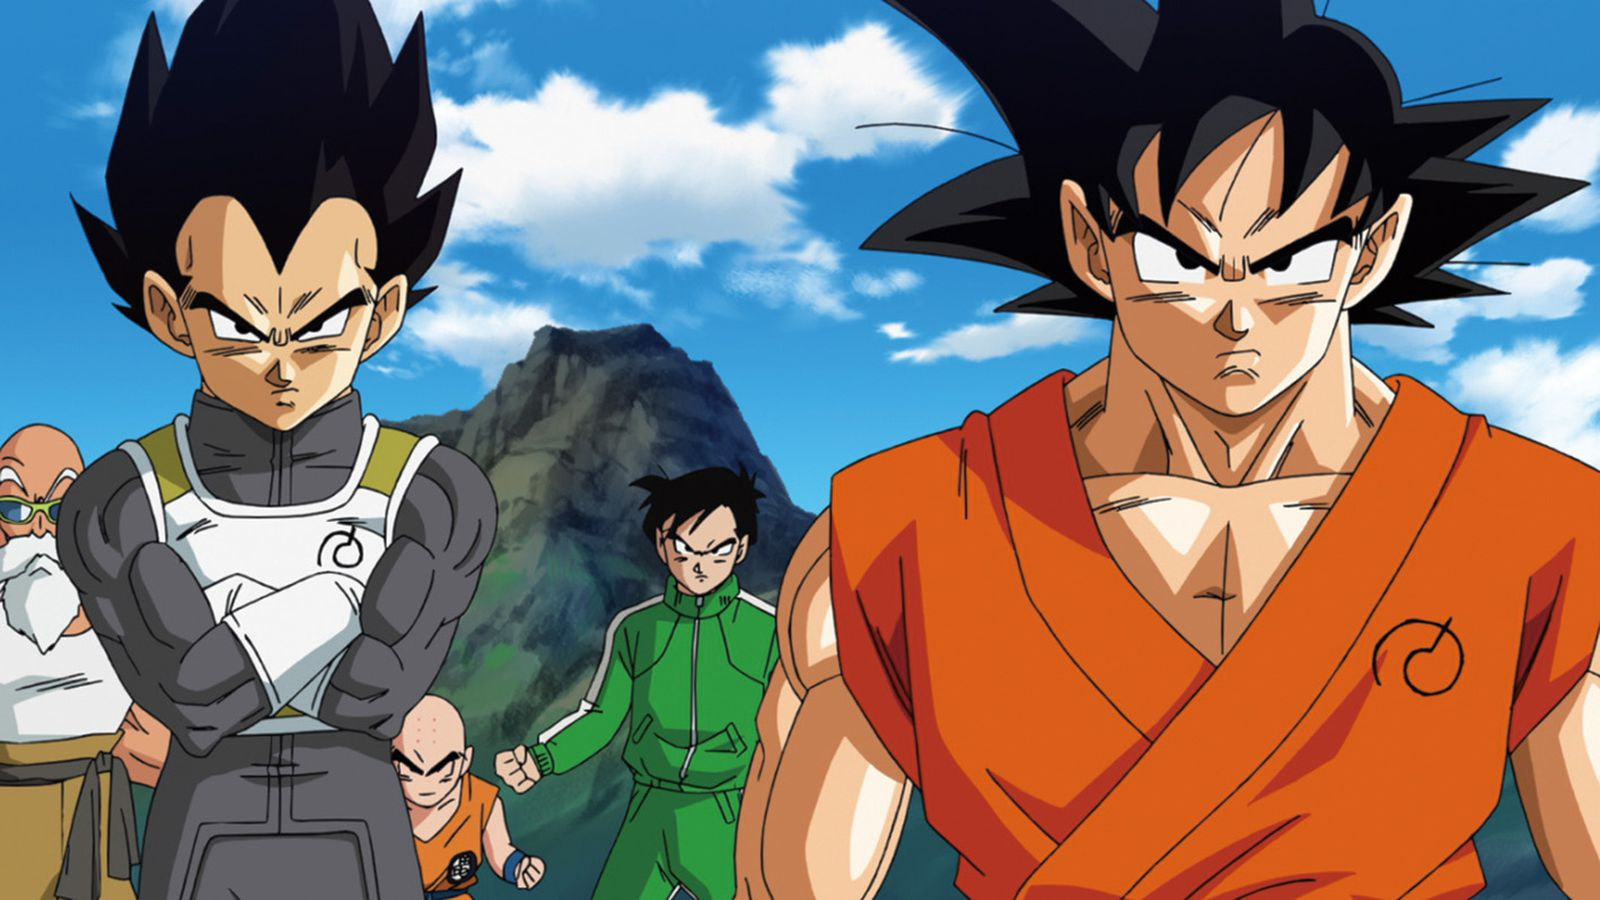 Life With Goku Talking To Dragon Ball Z Voice Actors Christopher